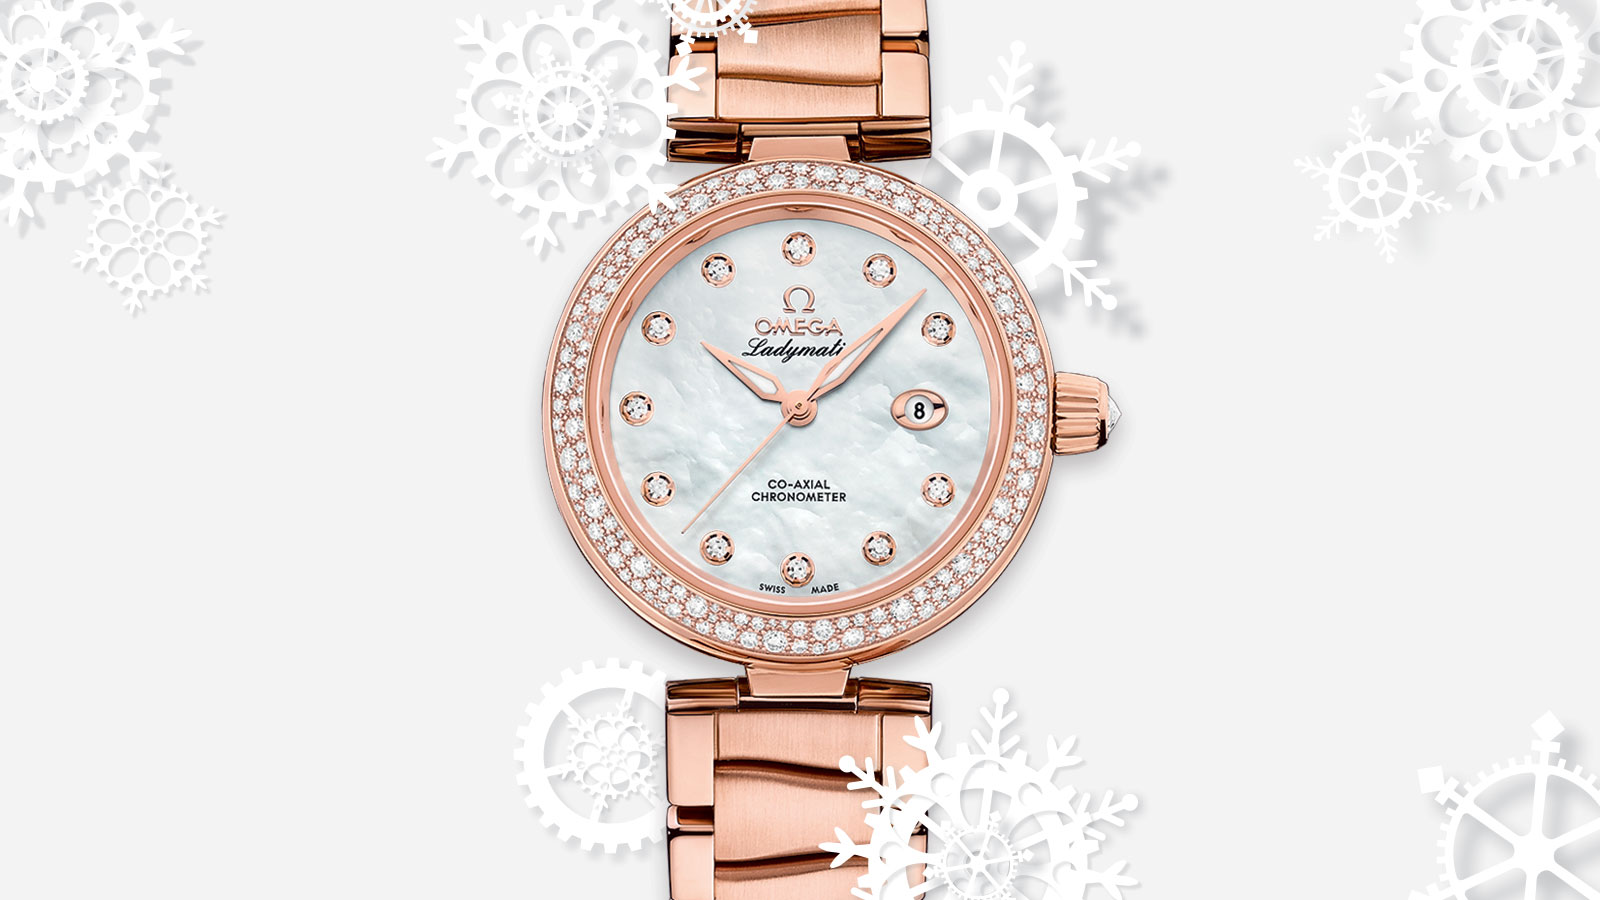 De Ville Ladymatic Ladymatic Omega Co‑Axial 34 mm Watch - 425.65.34.20.55.010